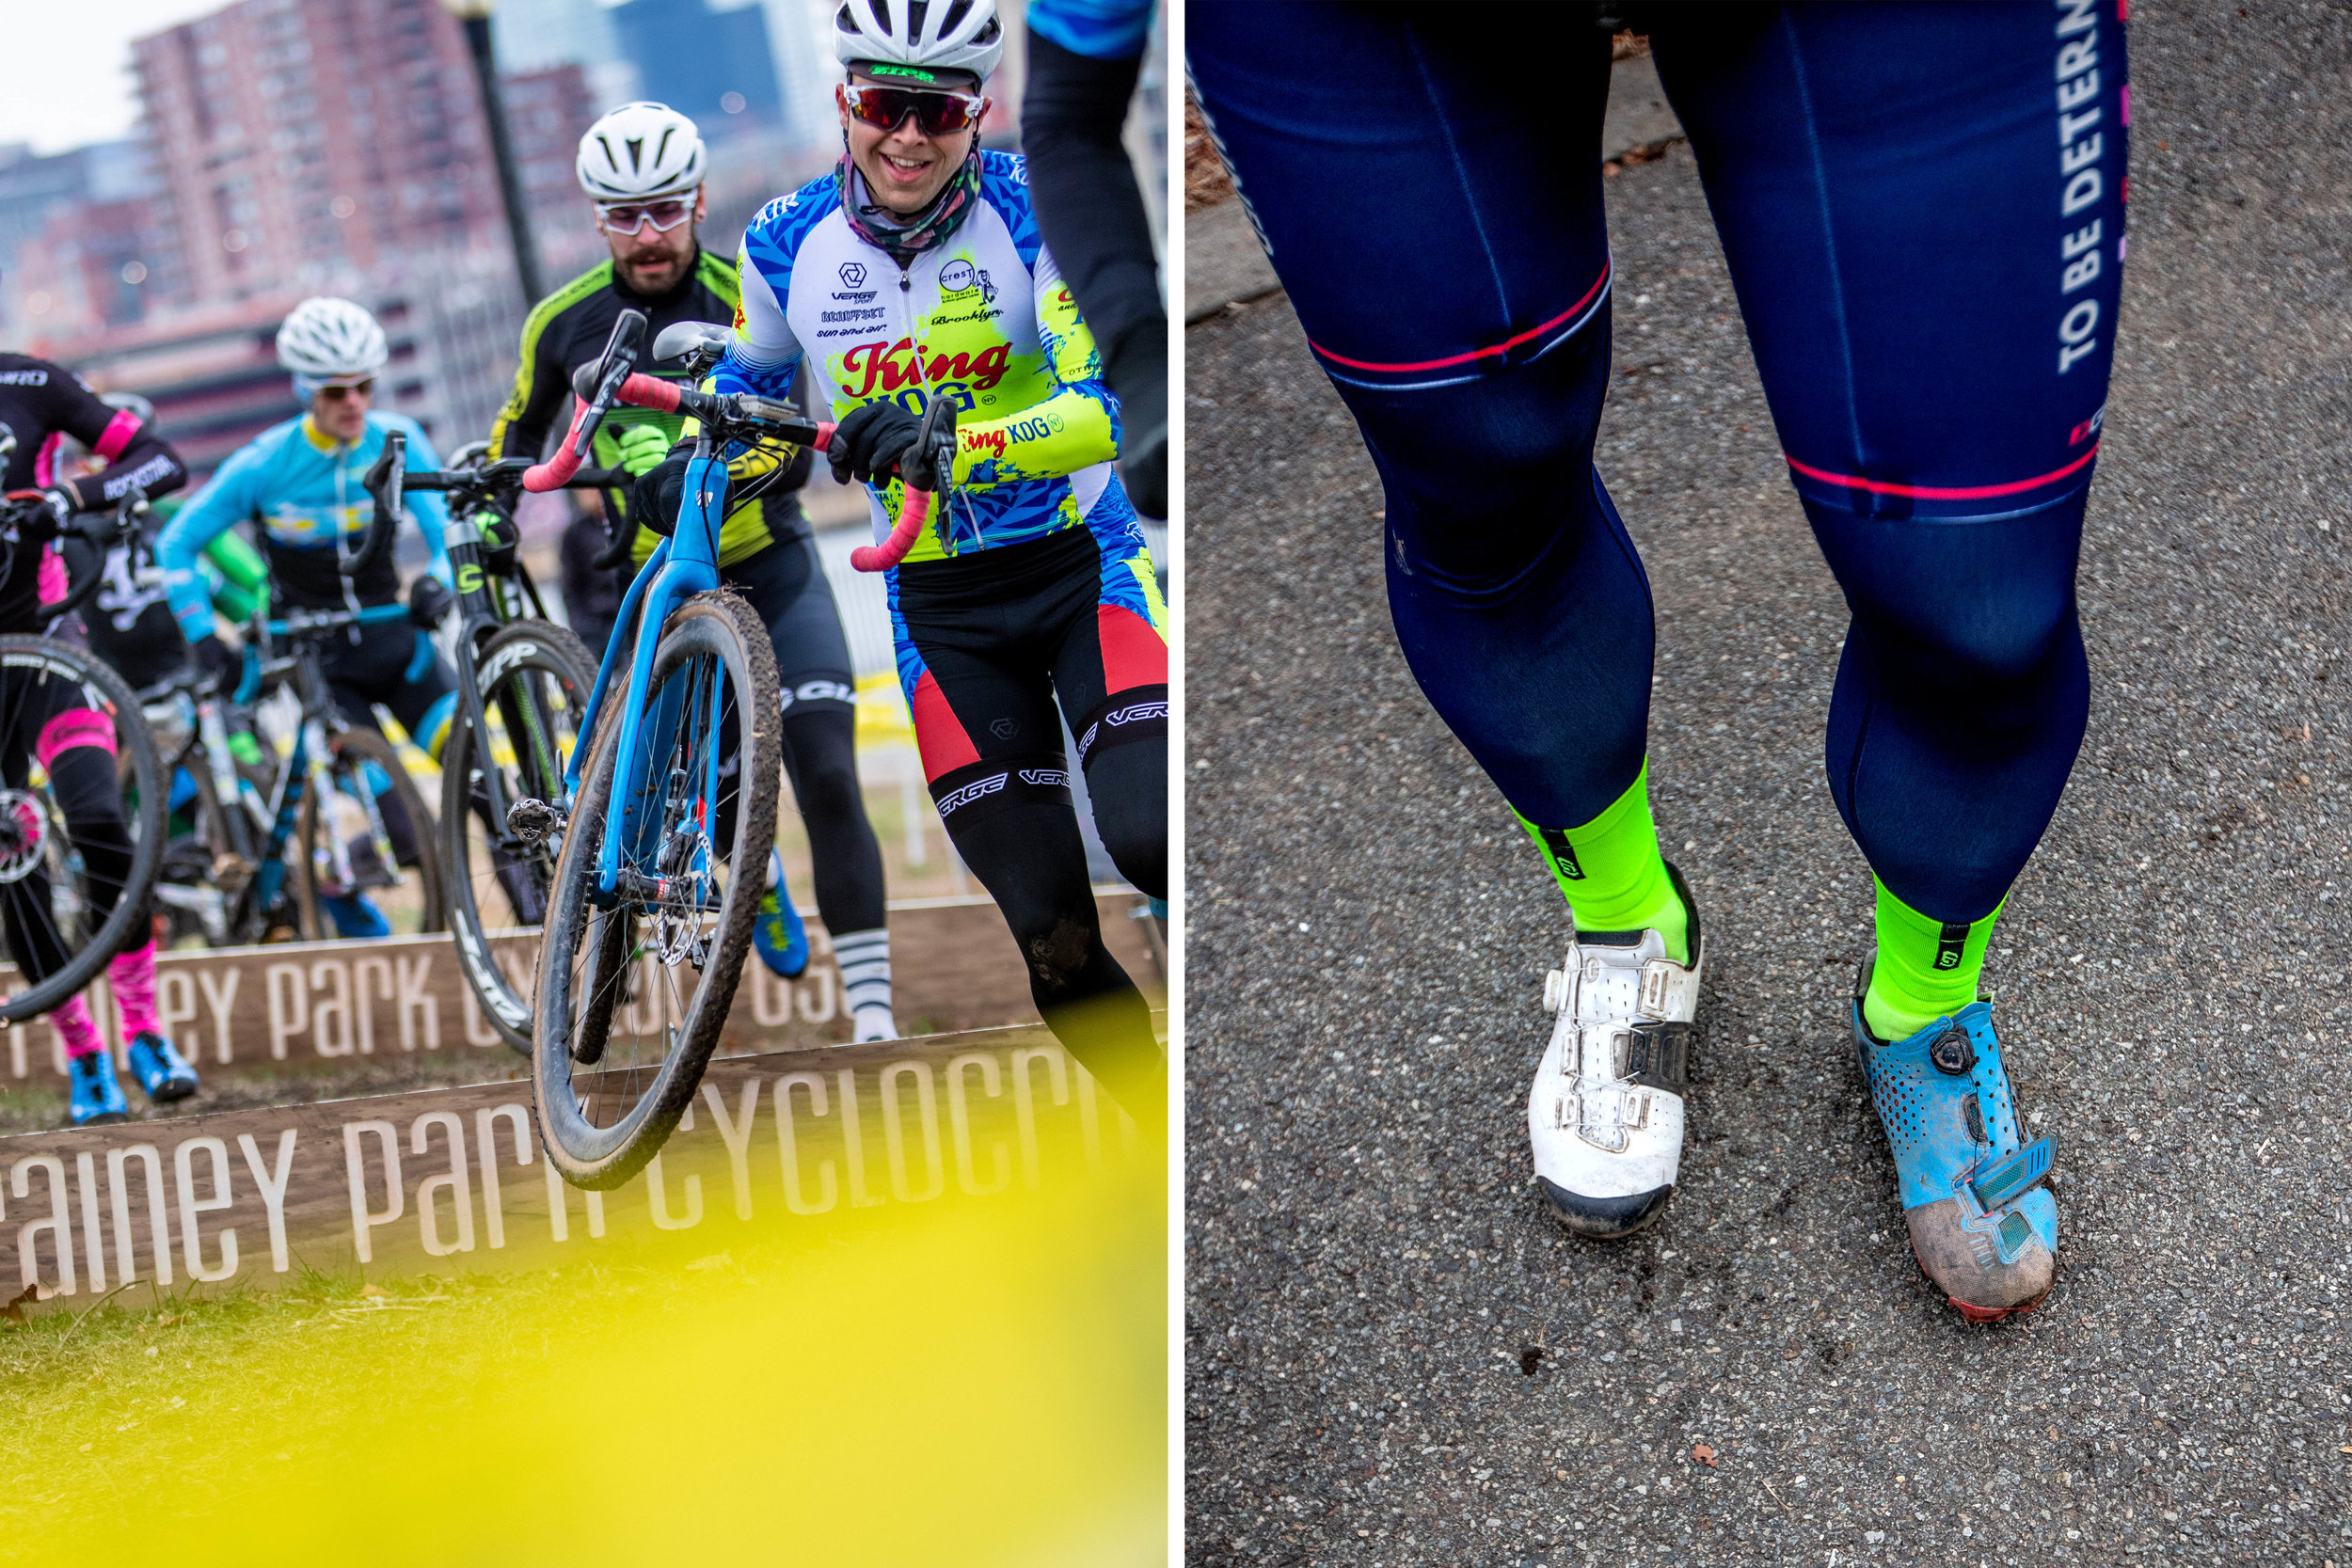 TBD's own Clay didn't even flinch to give his shoe to Brian when his shoe buckle broke and almost let him DNF.